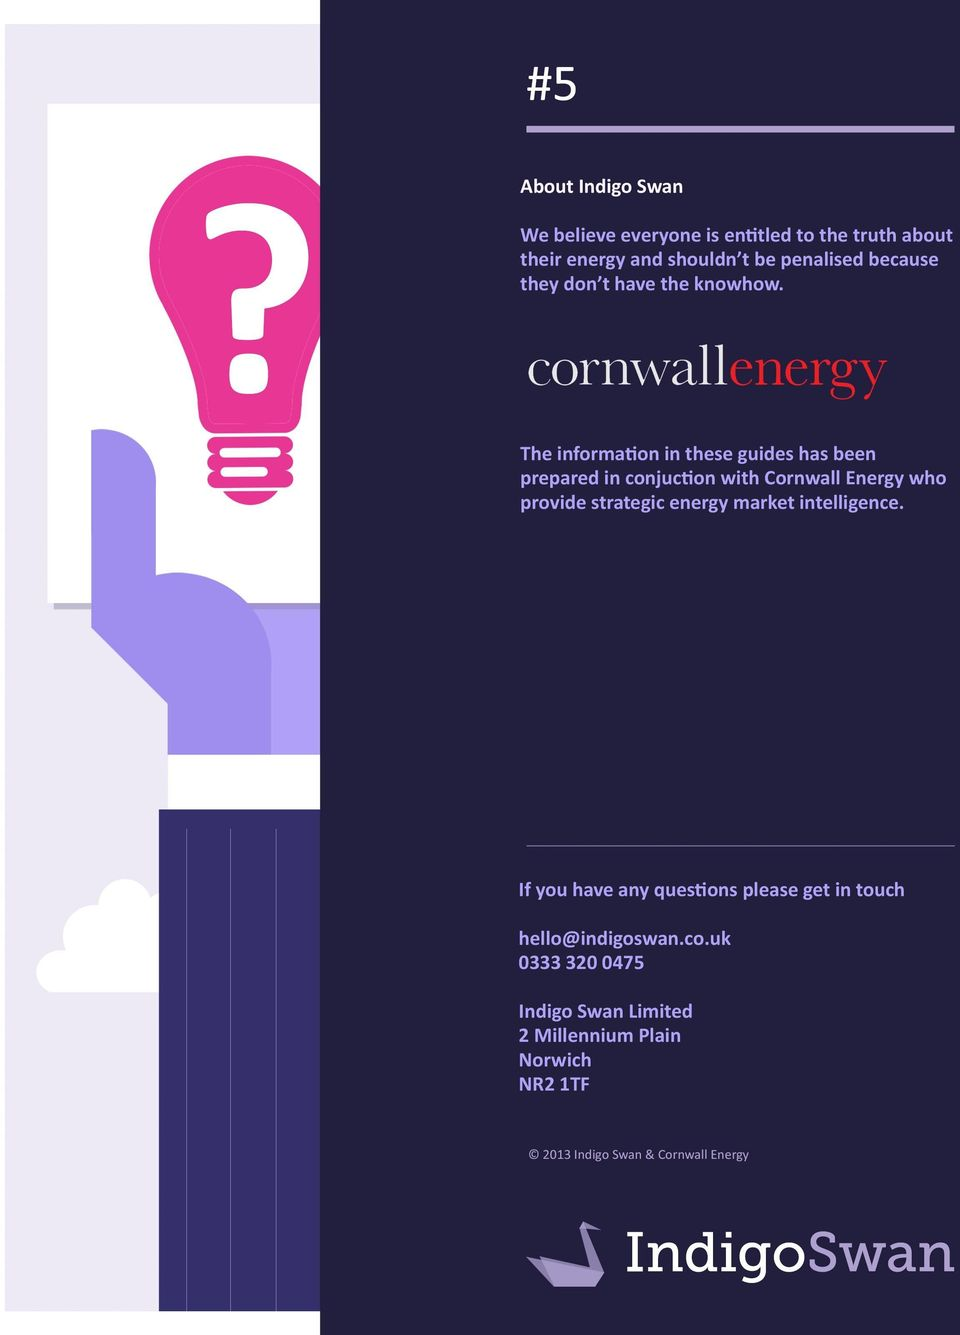 The information in these guides has been prepared in conjuction with Cornwall Energy who provide